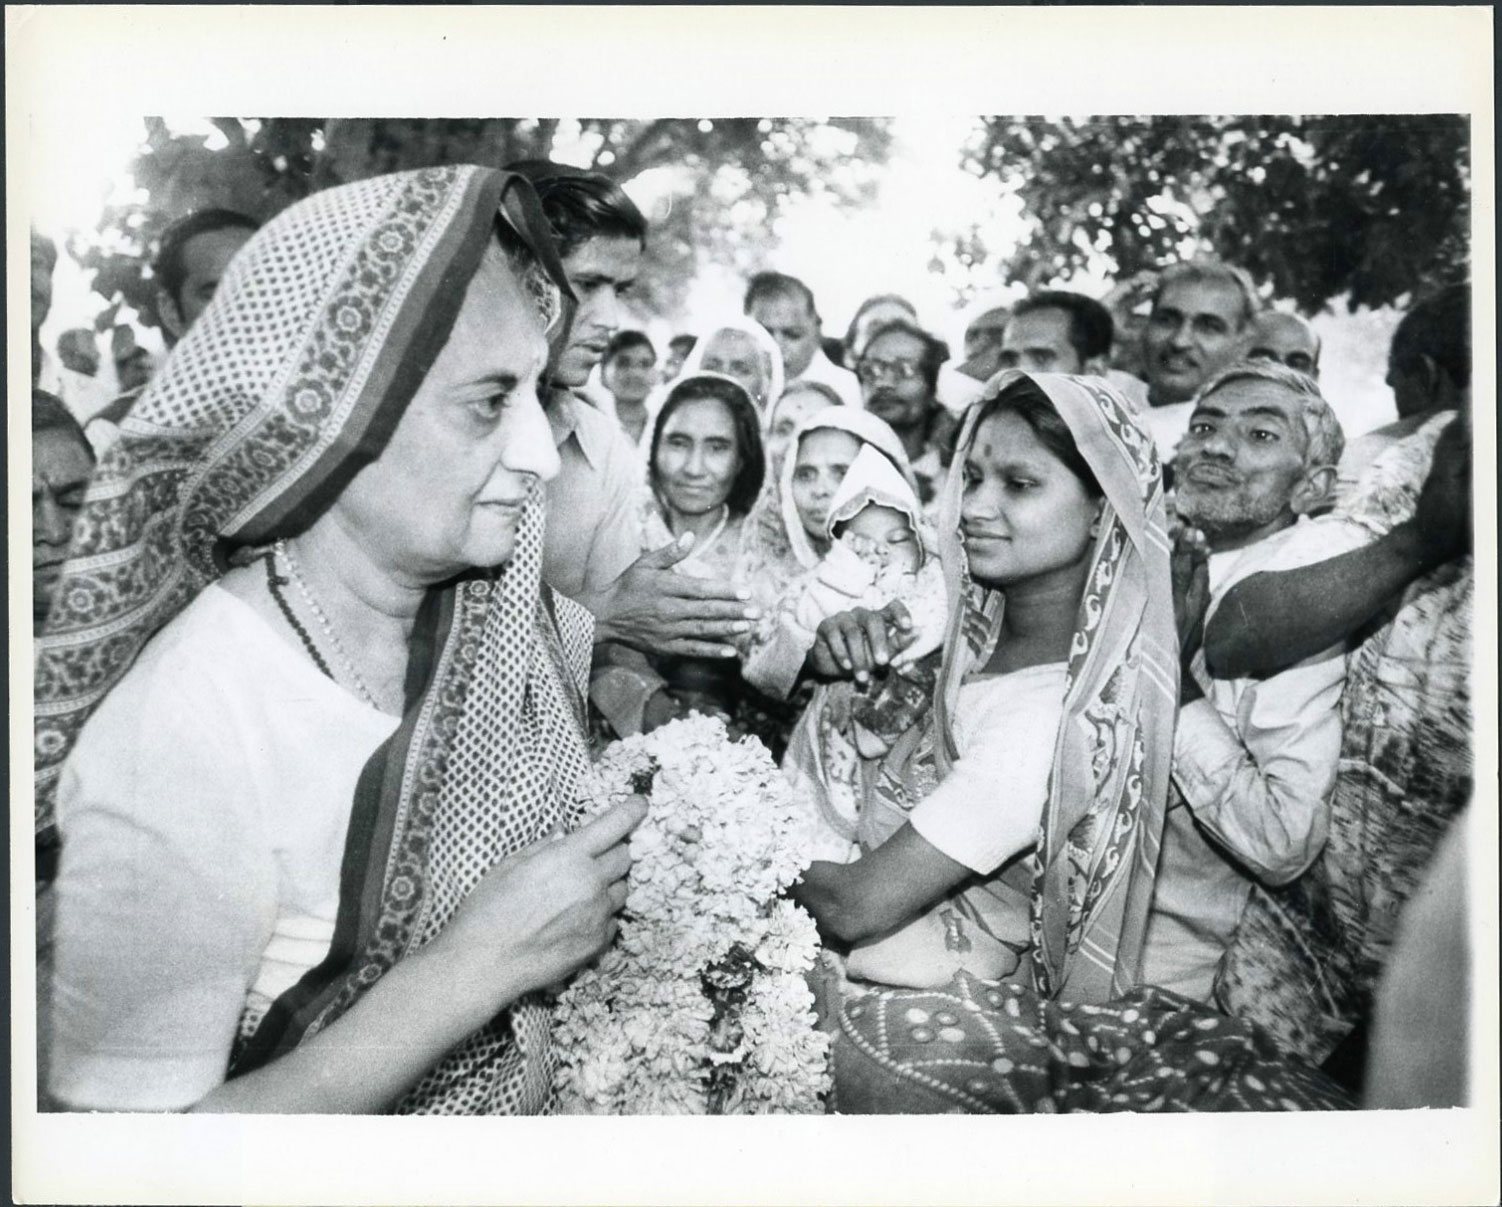 Indira Gandhi, Former Prime Minister of India, is greeted by admiers in New Delhi on her 63rd birthday (November 19). There are elections in India in January and Mrs. Gandhi is seeking to regain her old post - 1979